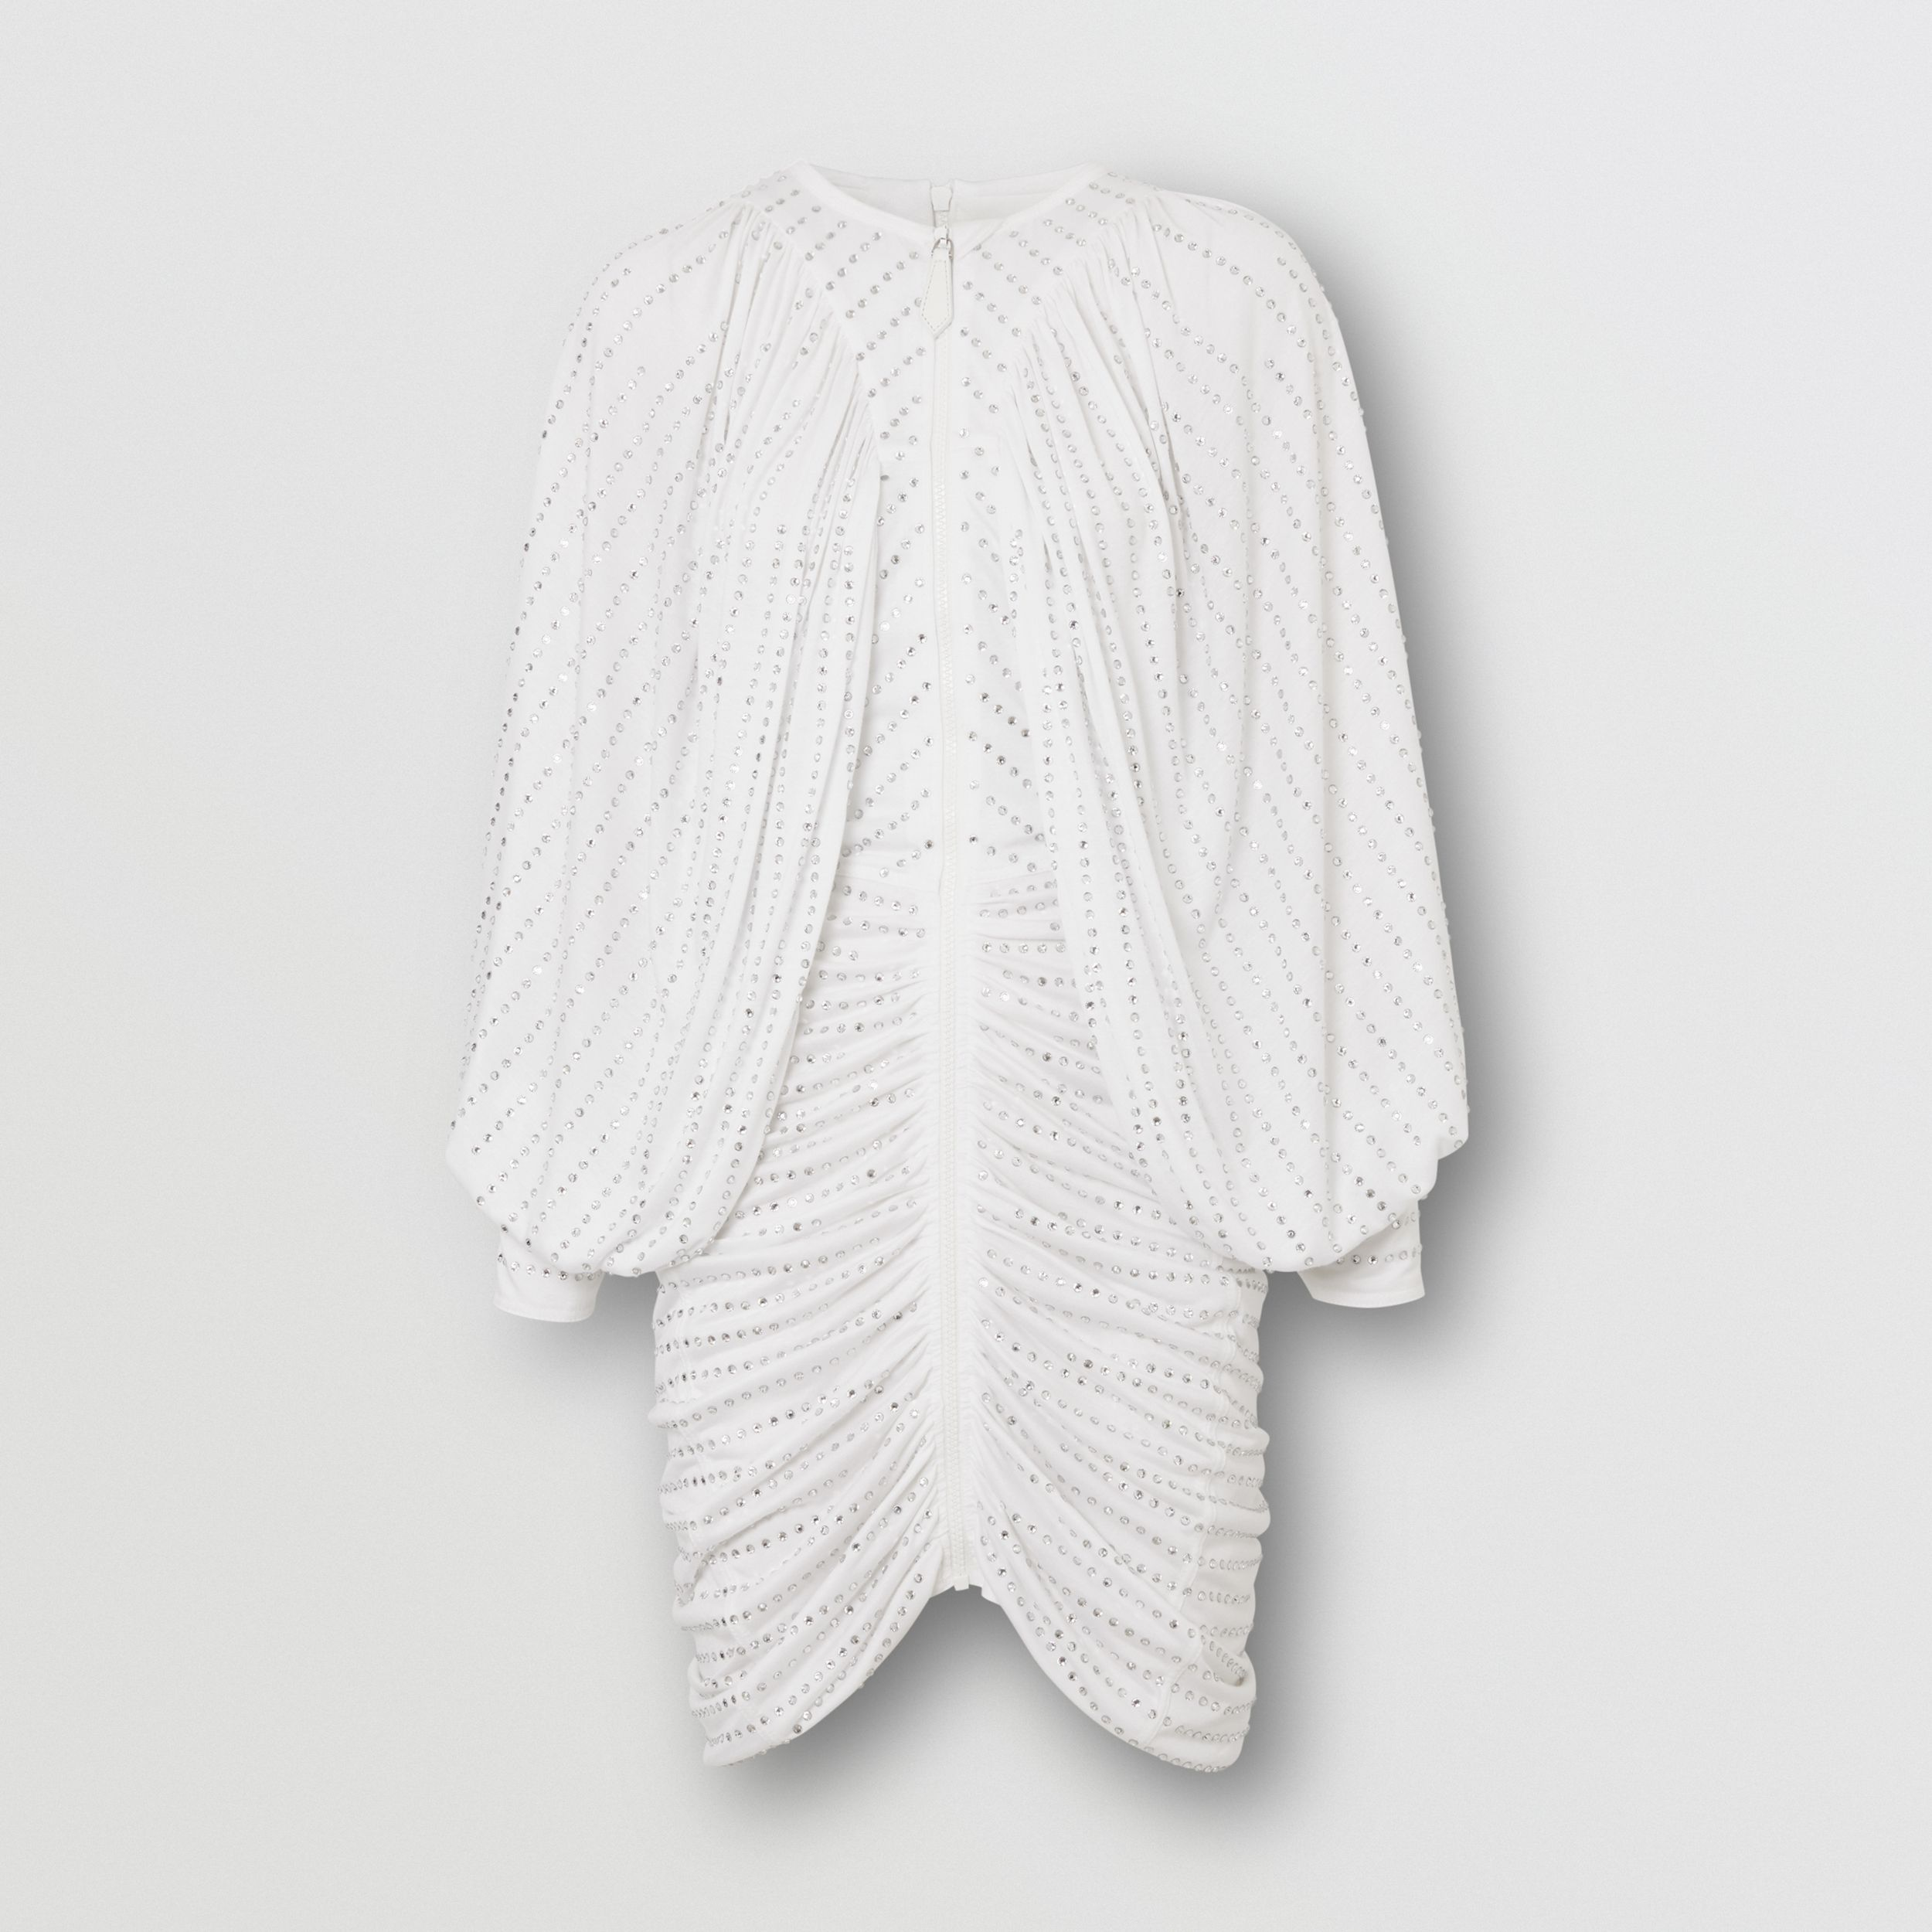 Crystal Pinstriped Ruched Jersey Dress in Optic White - Women | Burberry Hong Kong S.A.R. - 4